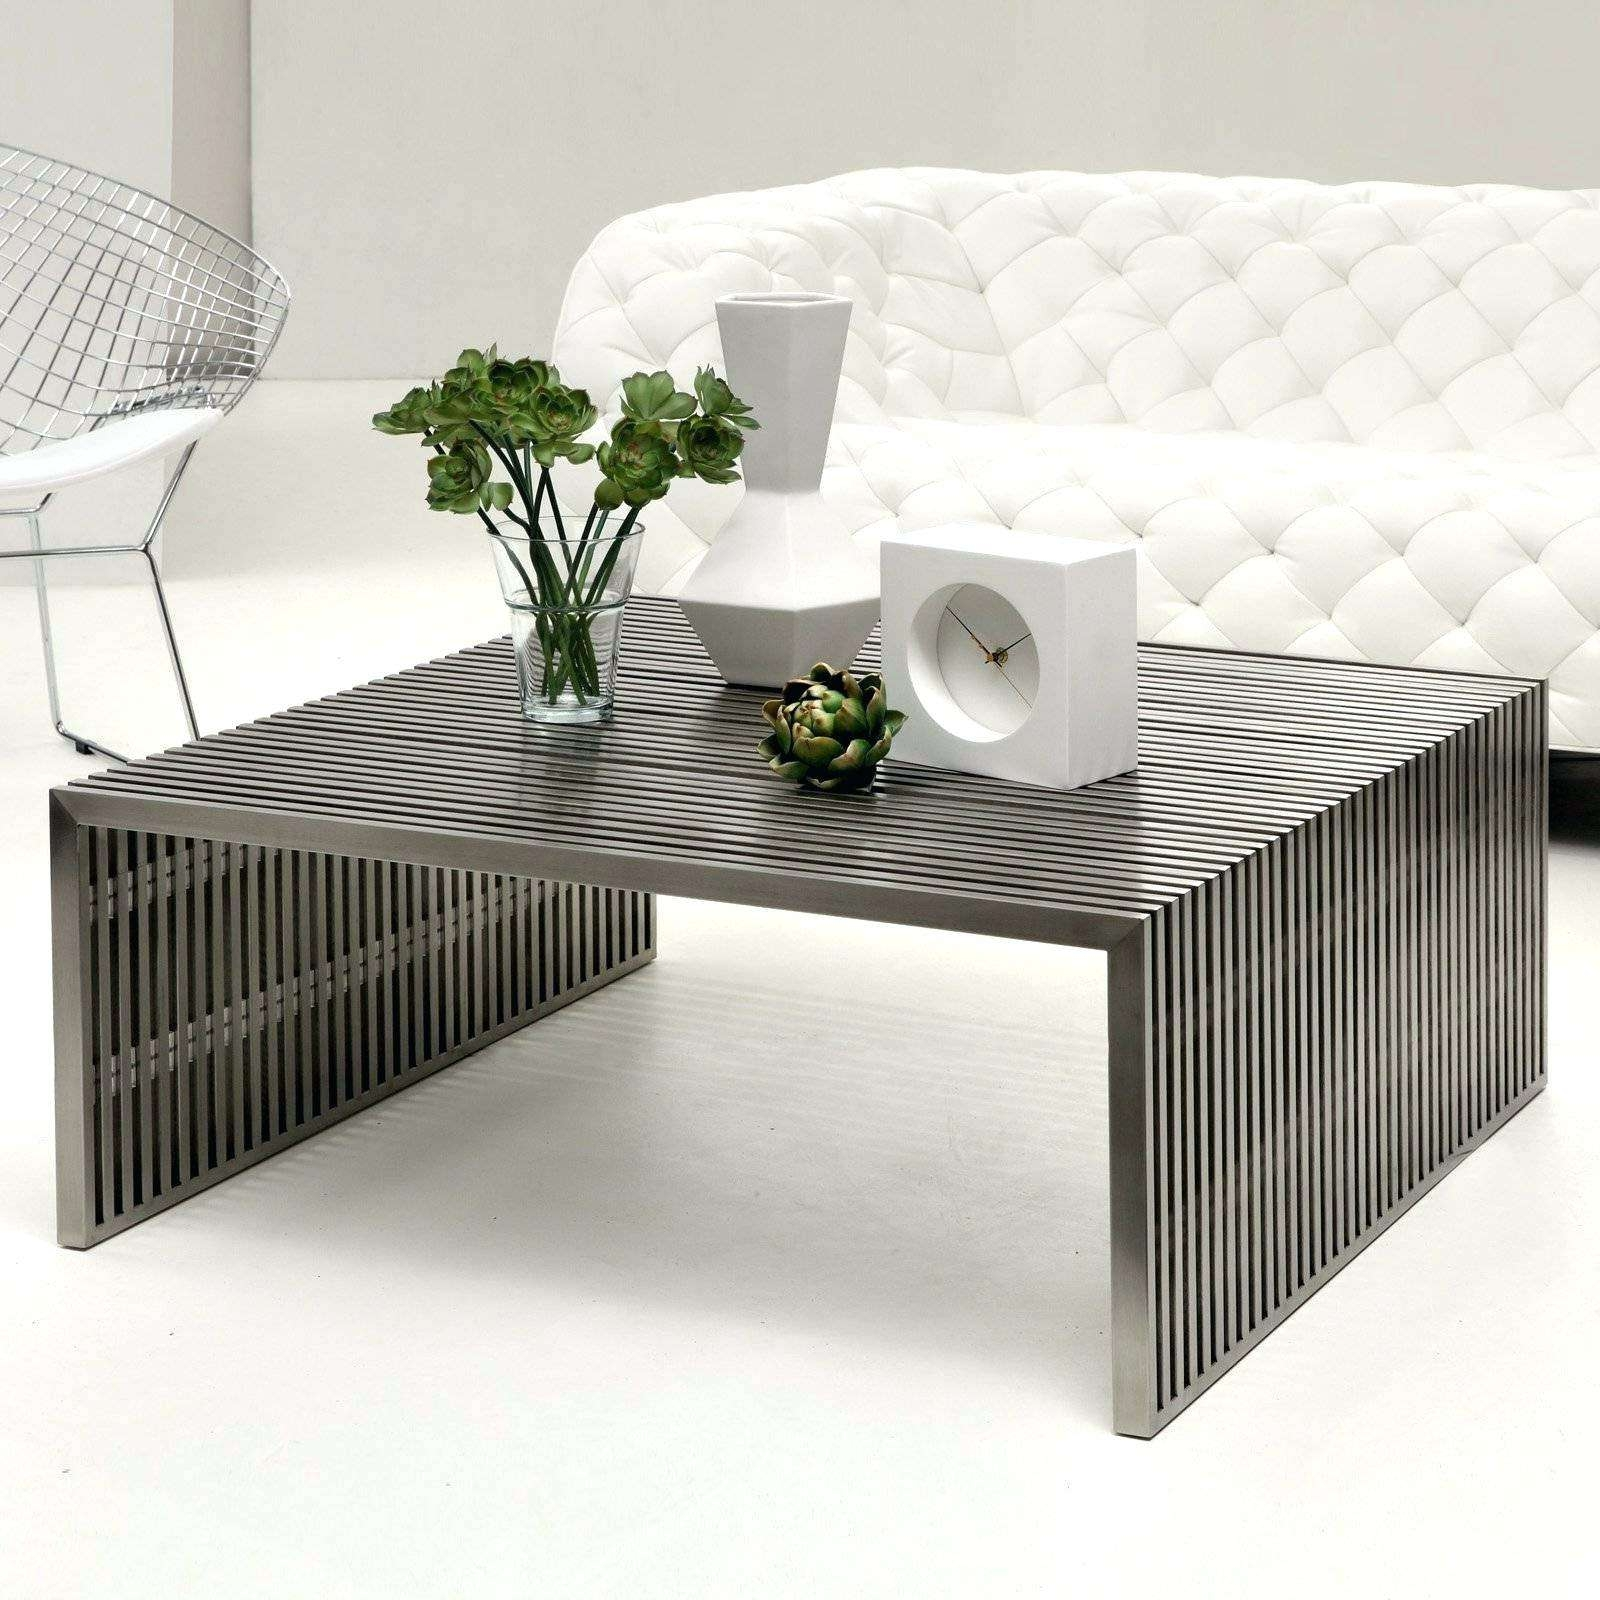 Large Low Coffee Table Square Teak Wood Intended For Tables With With Regard To Trendy Low Coffee Tables With Storage (View 16 of 20)